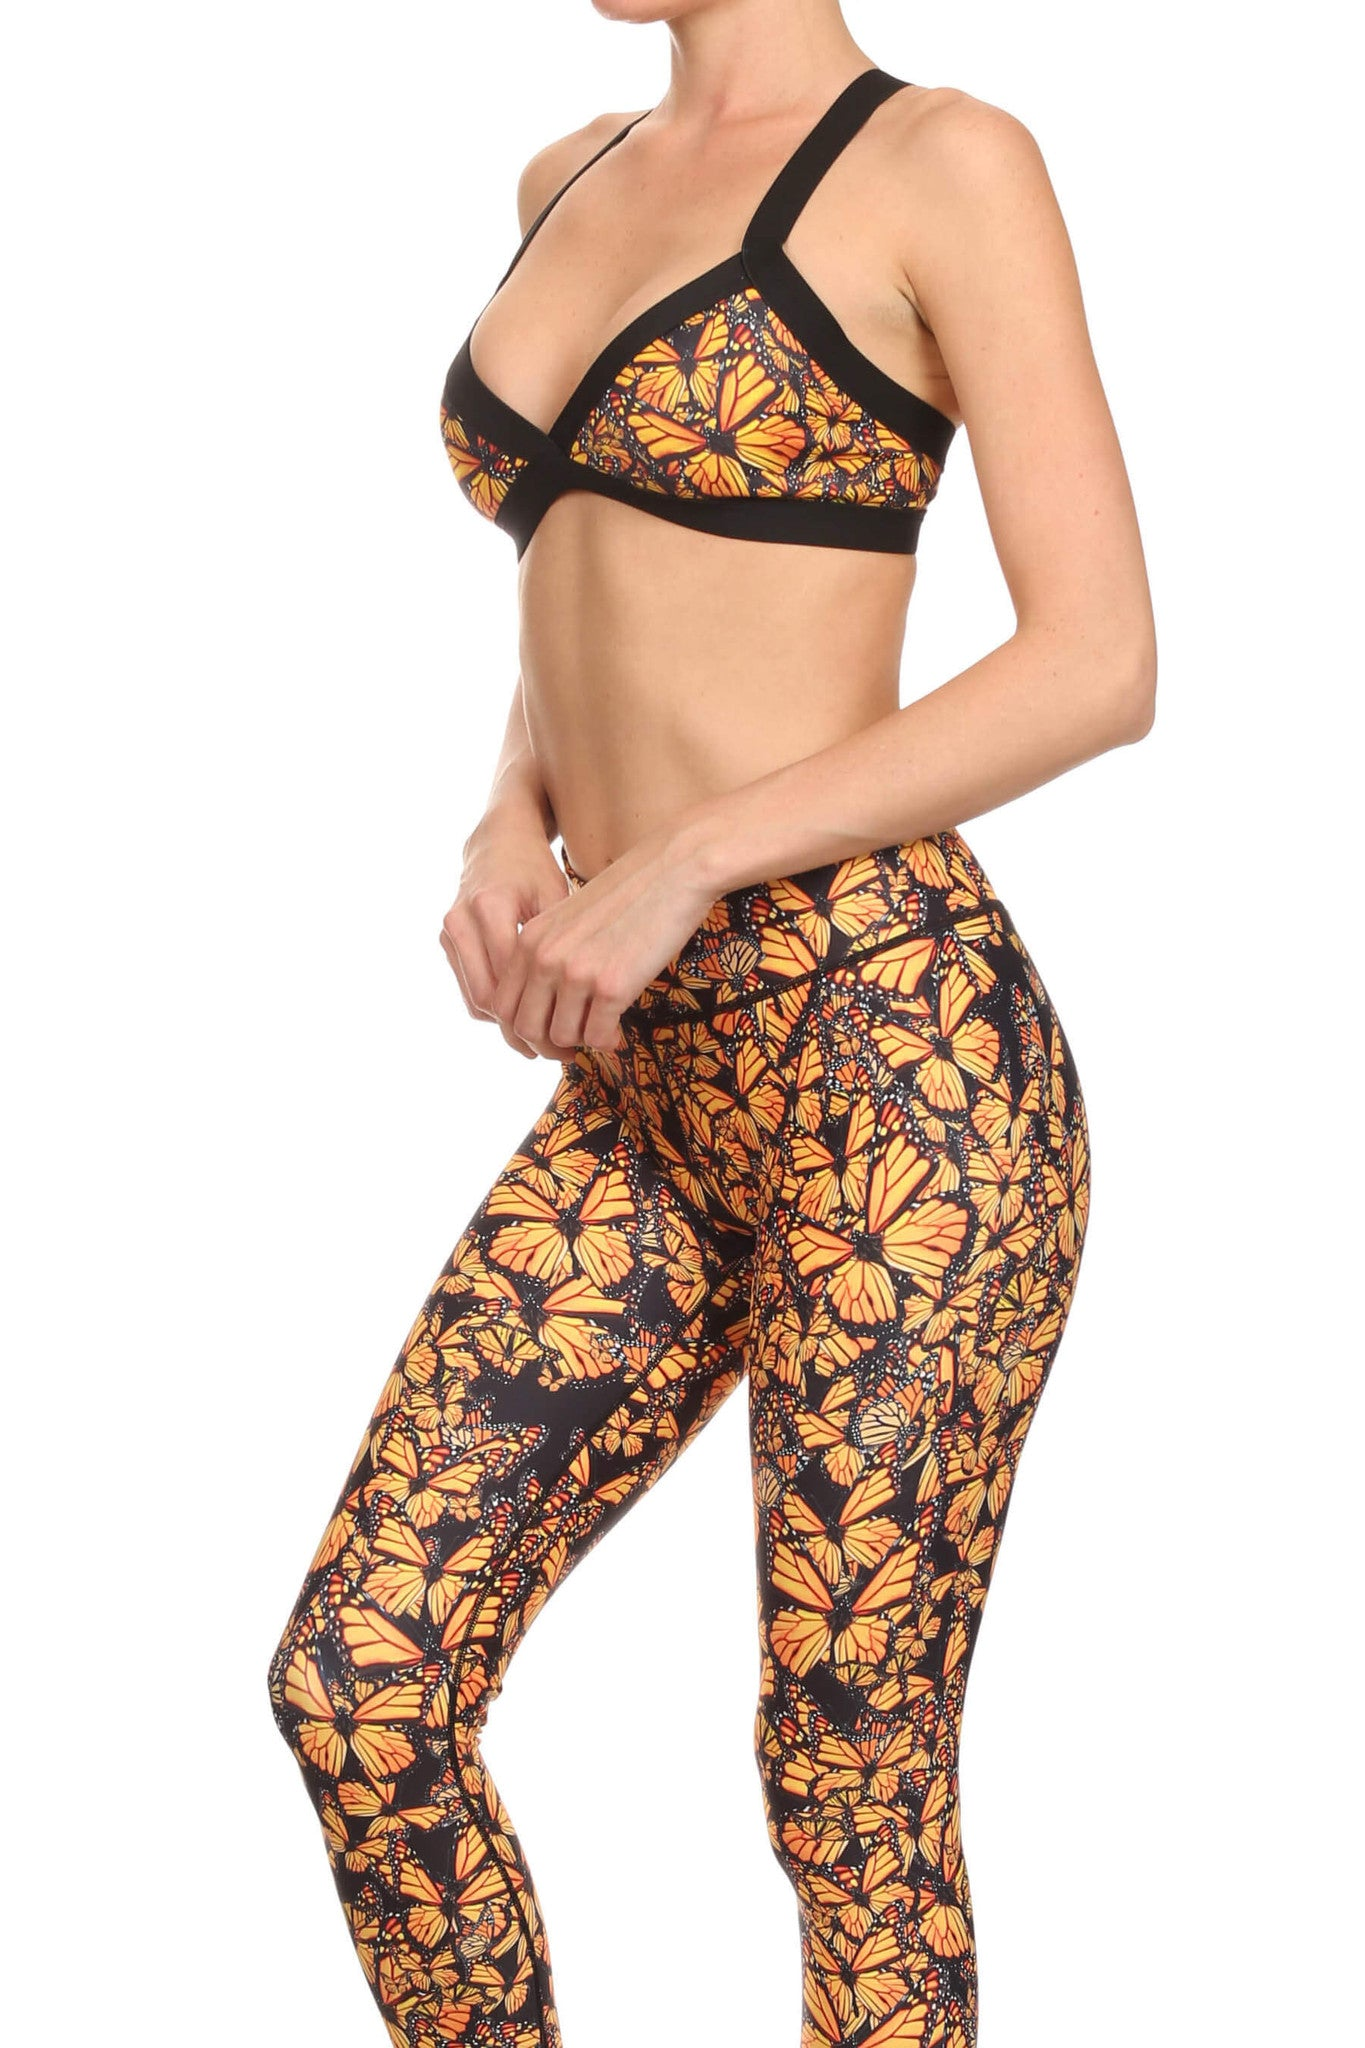 Attack of the Monarchs Jasmine Sports Bralette - POPRAGEOUS  - 2